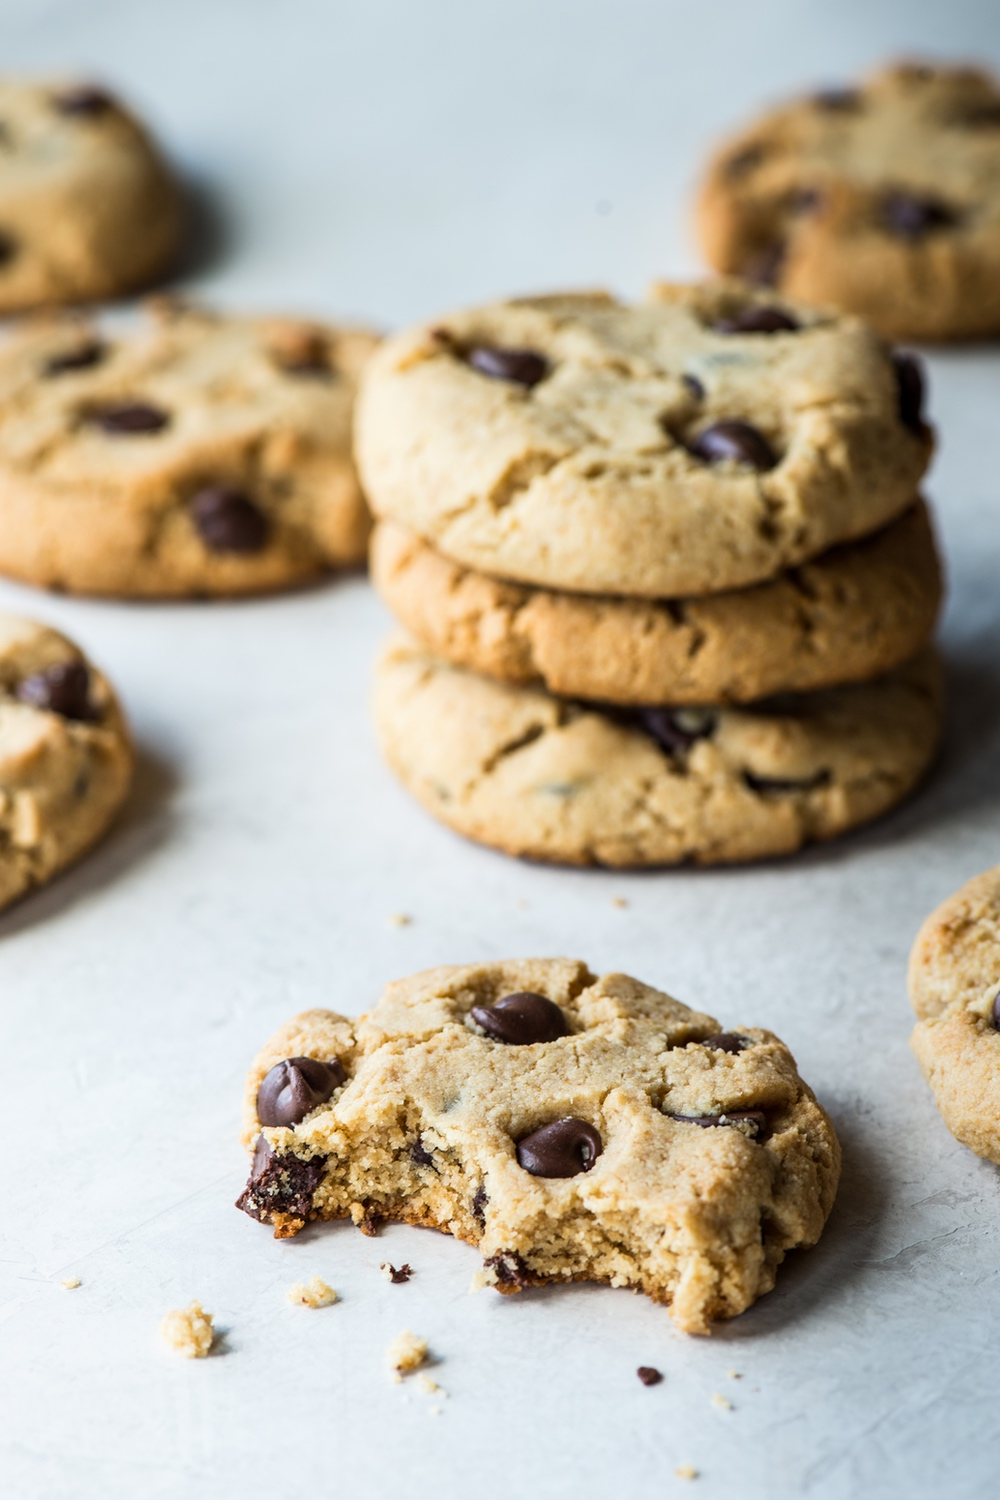 The Best Paleo Chewy Chocolate Chip Cookies Recipe Chocolate Chip Cookies Chewy Chocolate Chip Cookies Cookies Recipes Chocolate Chip